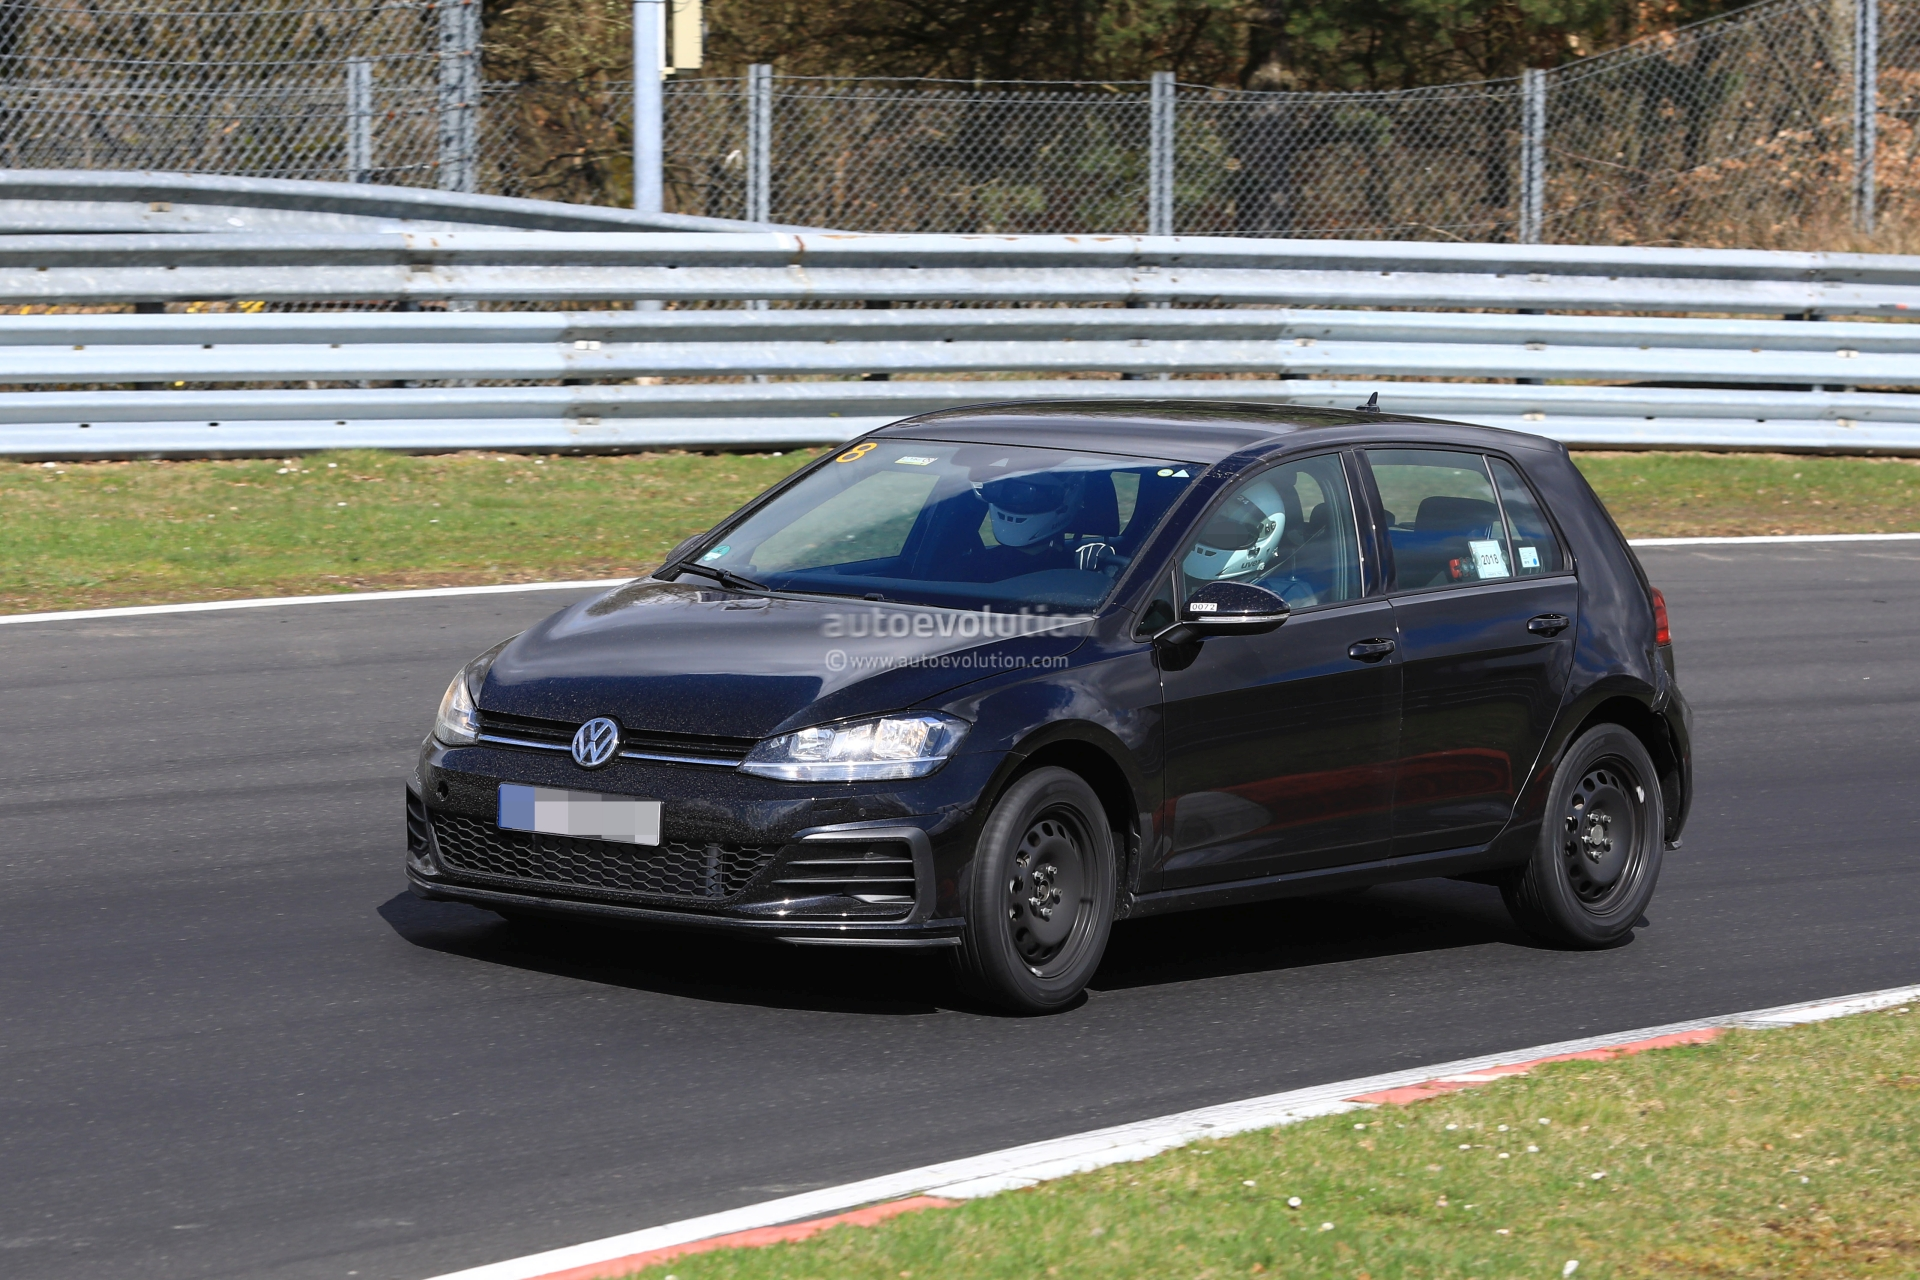 2019 Vw Golf 8 Will Have Mercedes A Class Like Dual Screens